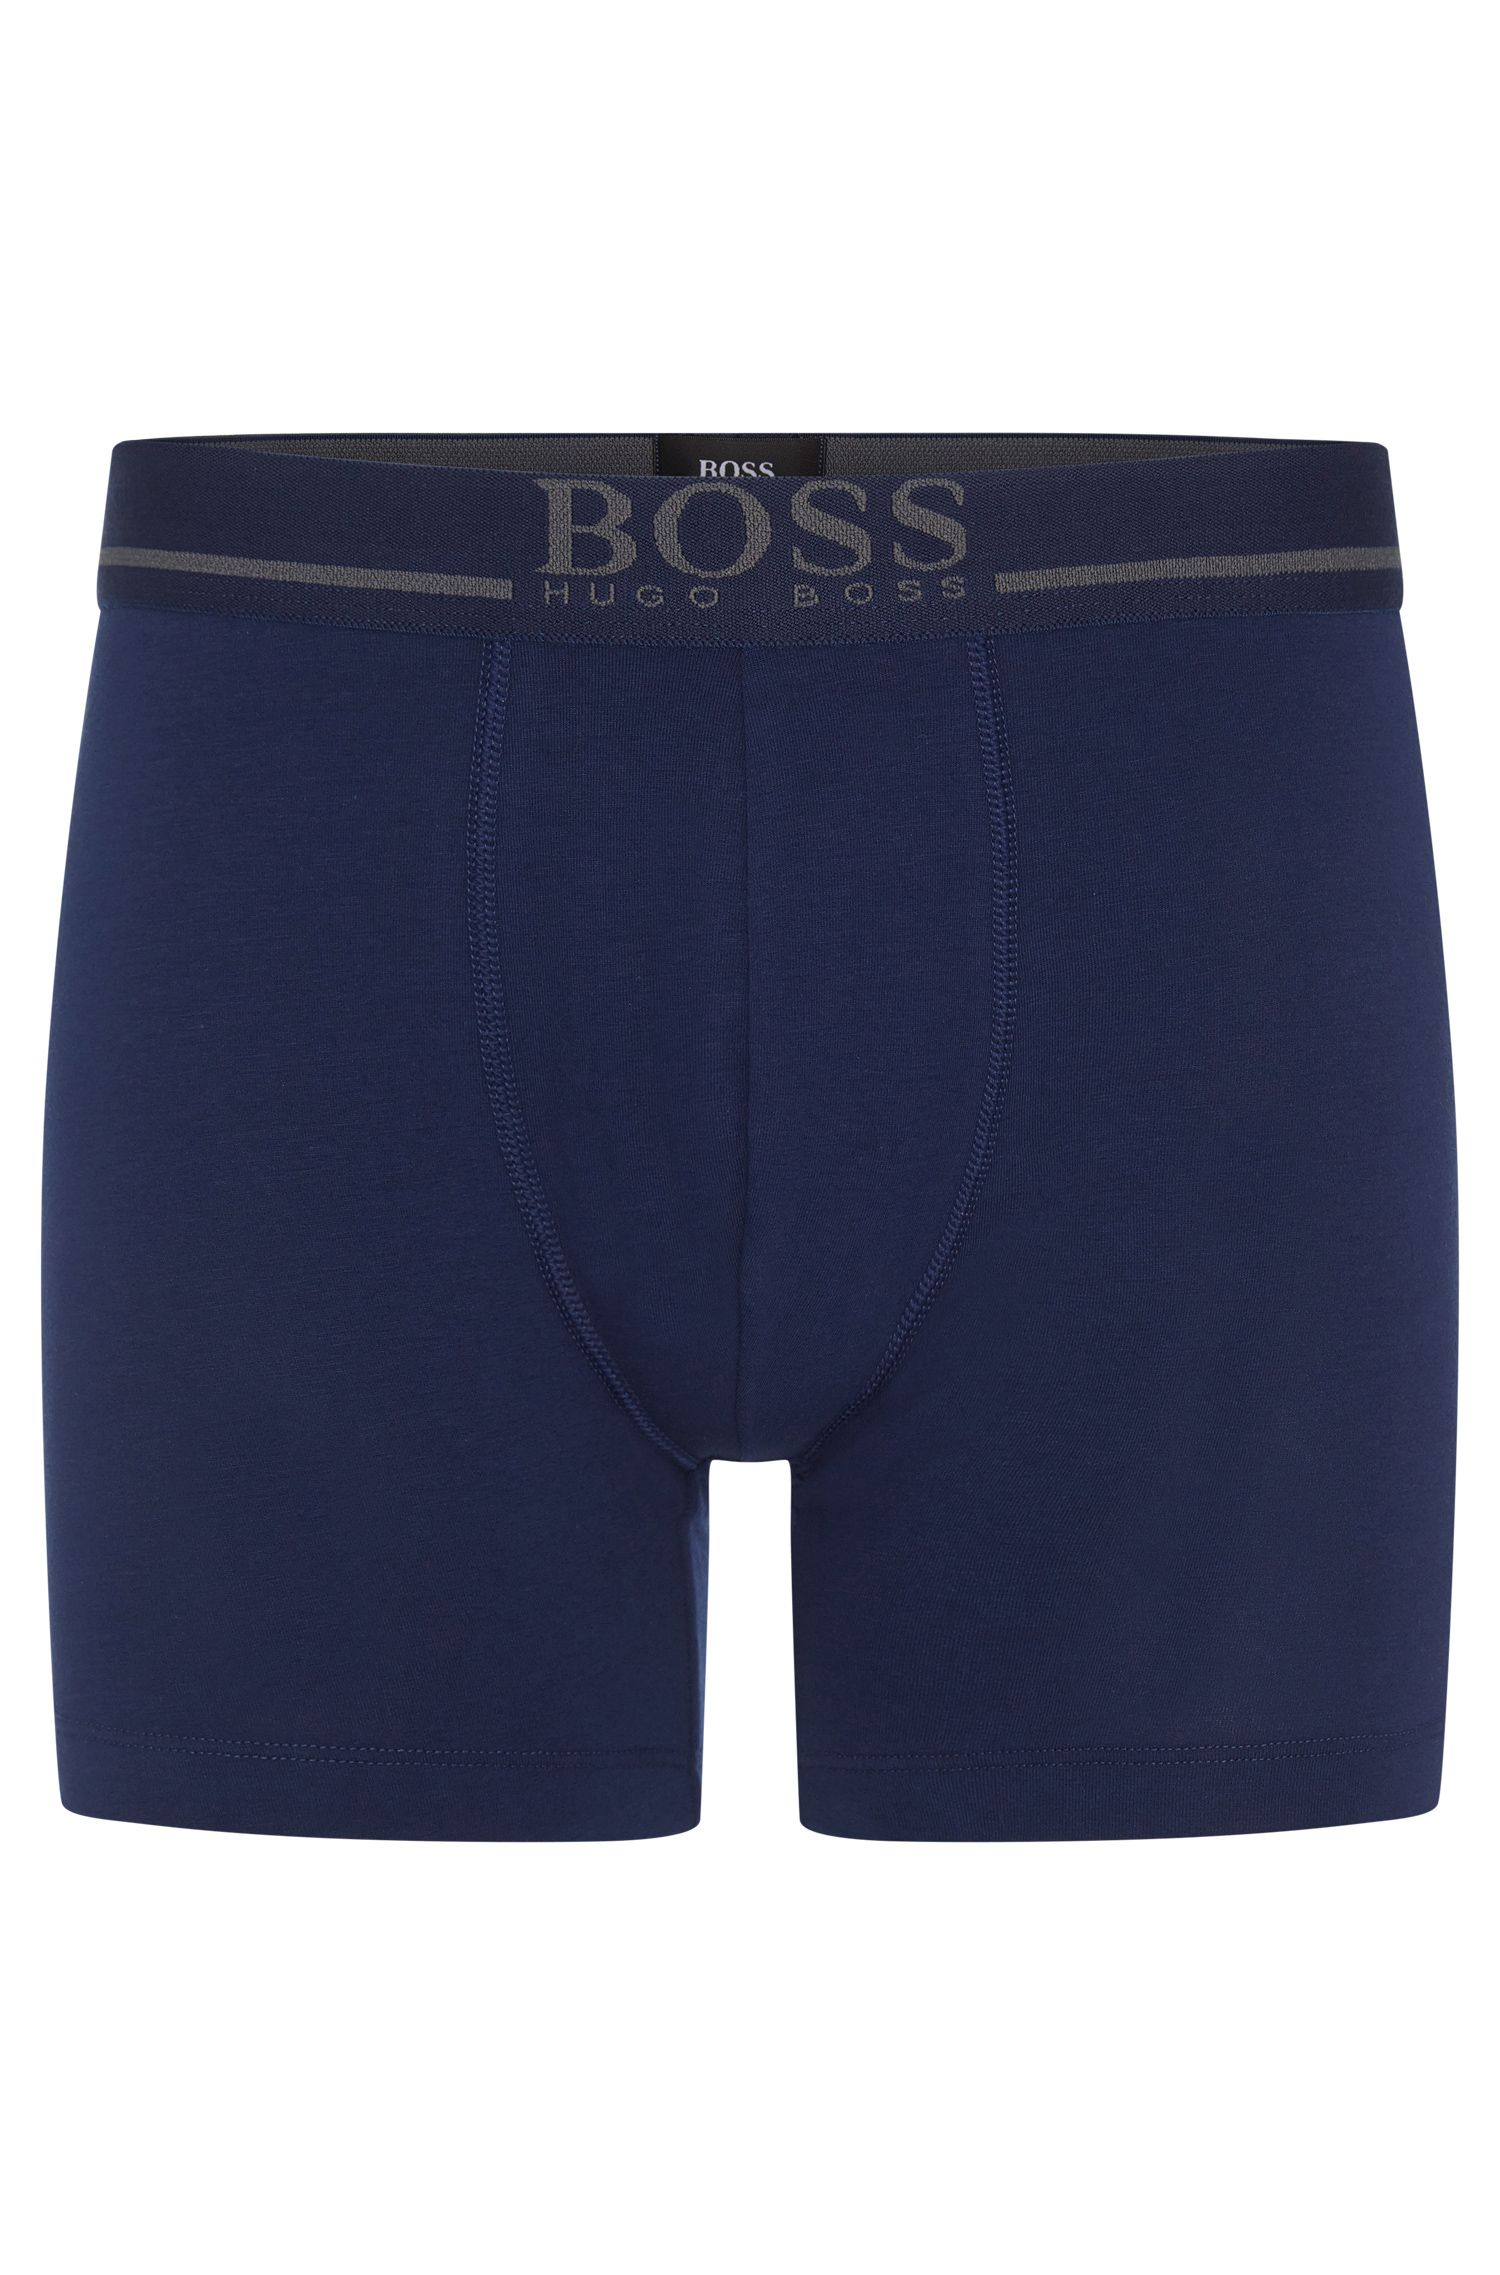 Boxer shorts in stretch single jersey